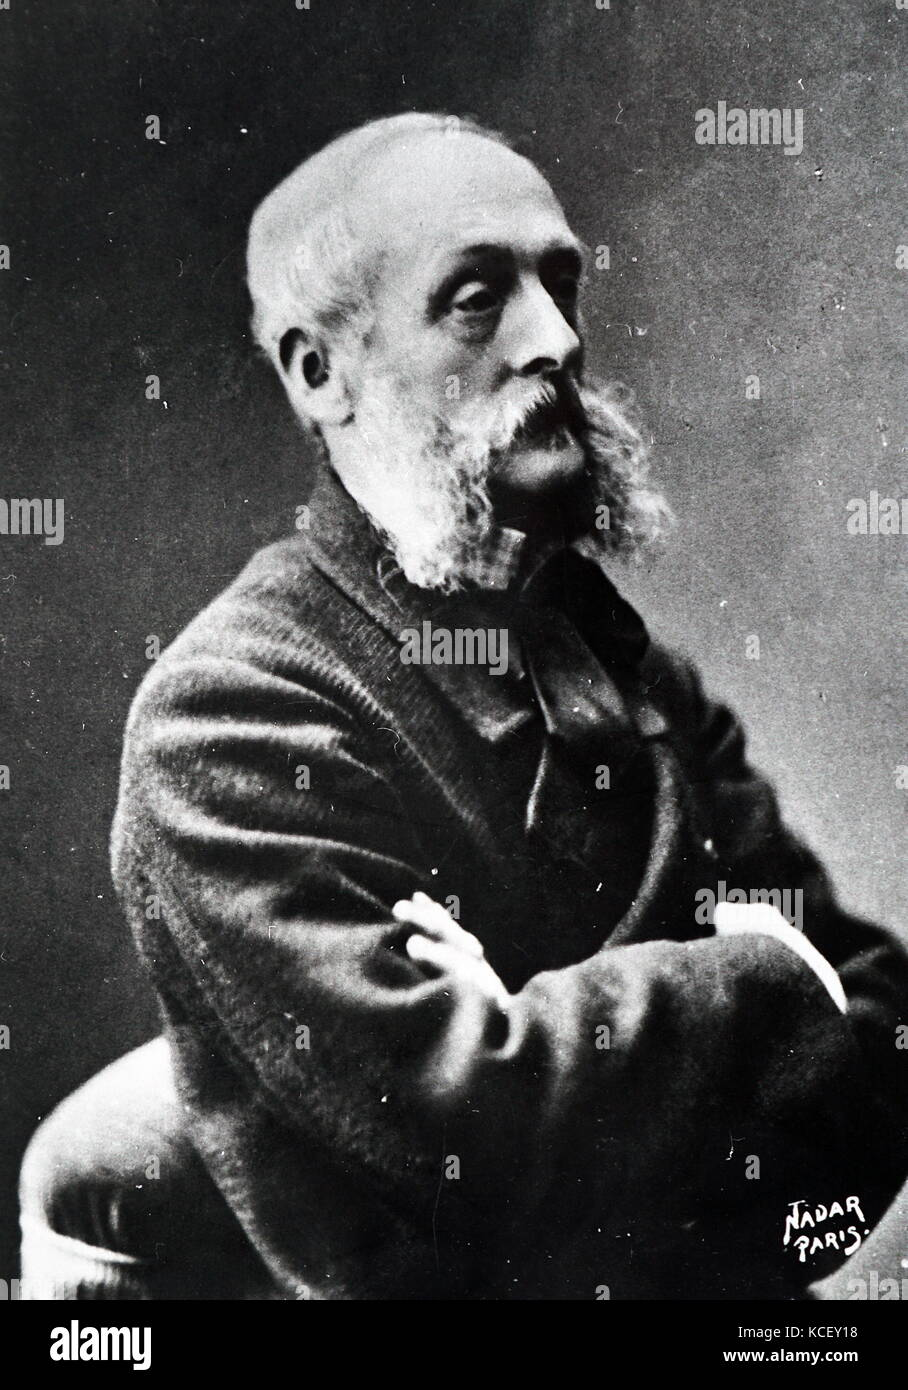 Photograph of Charles Joshua Chaplin (1825-1891) a French painter and printmaker. Dated 19th Century - Stock Image